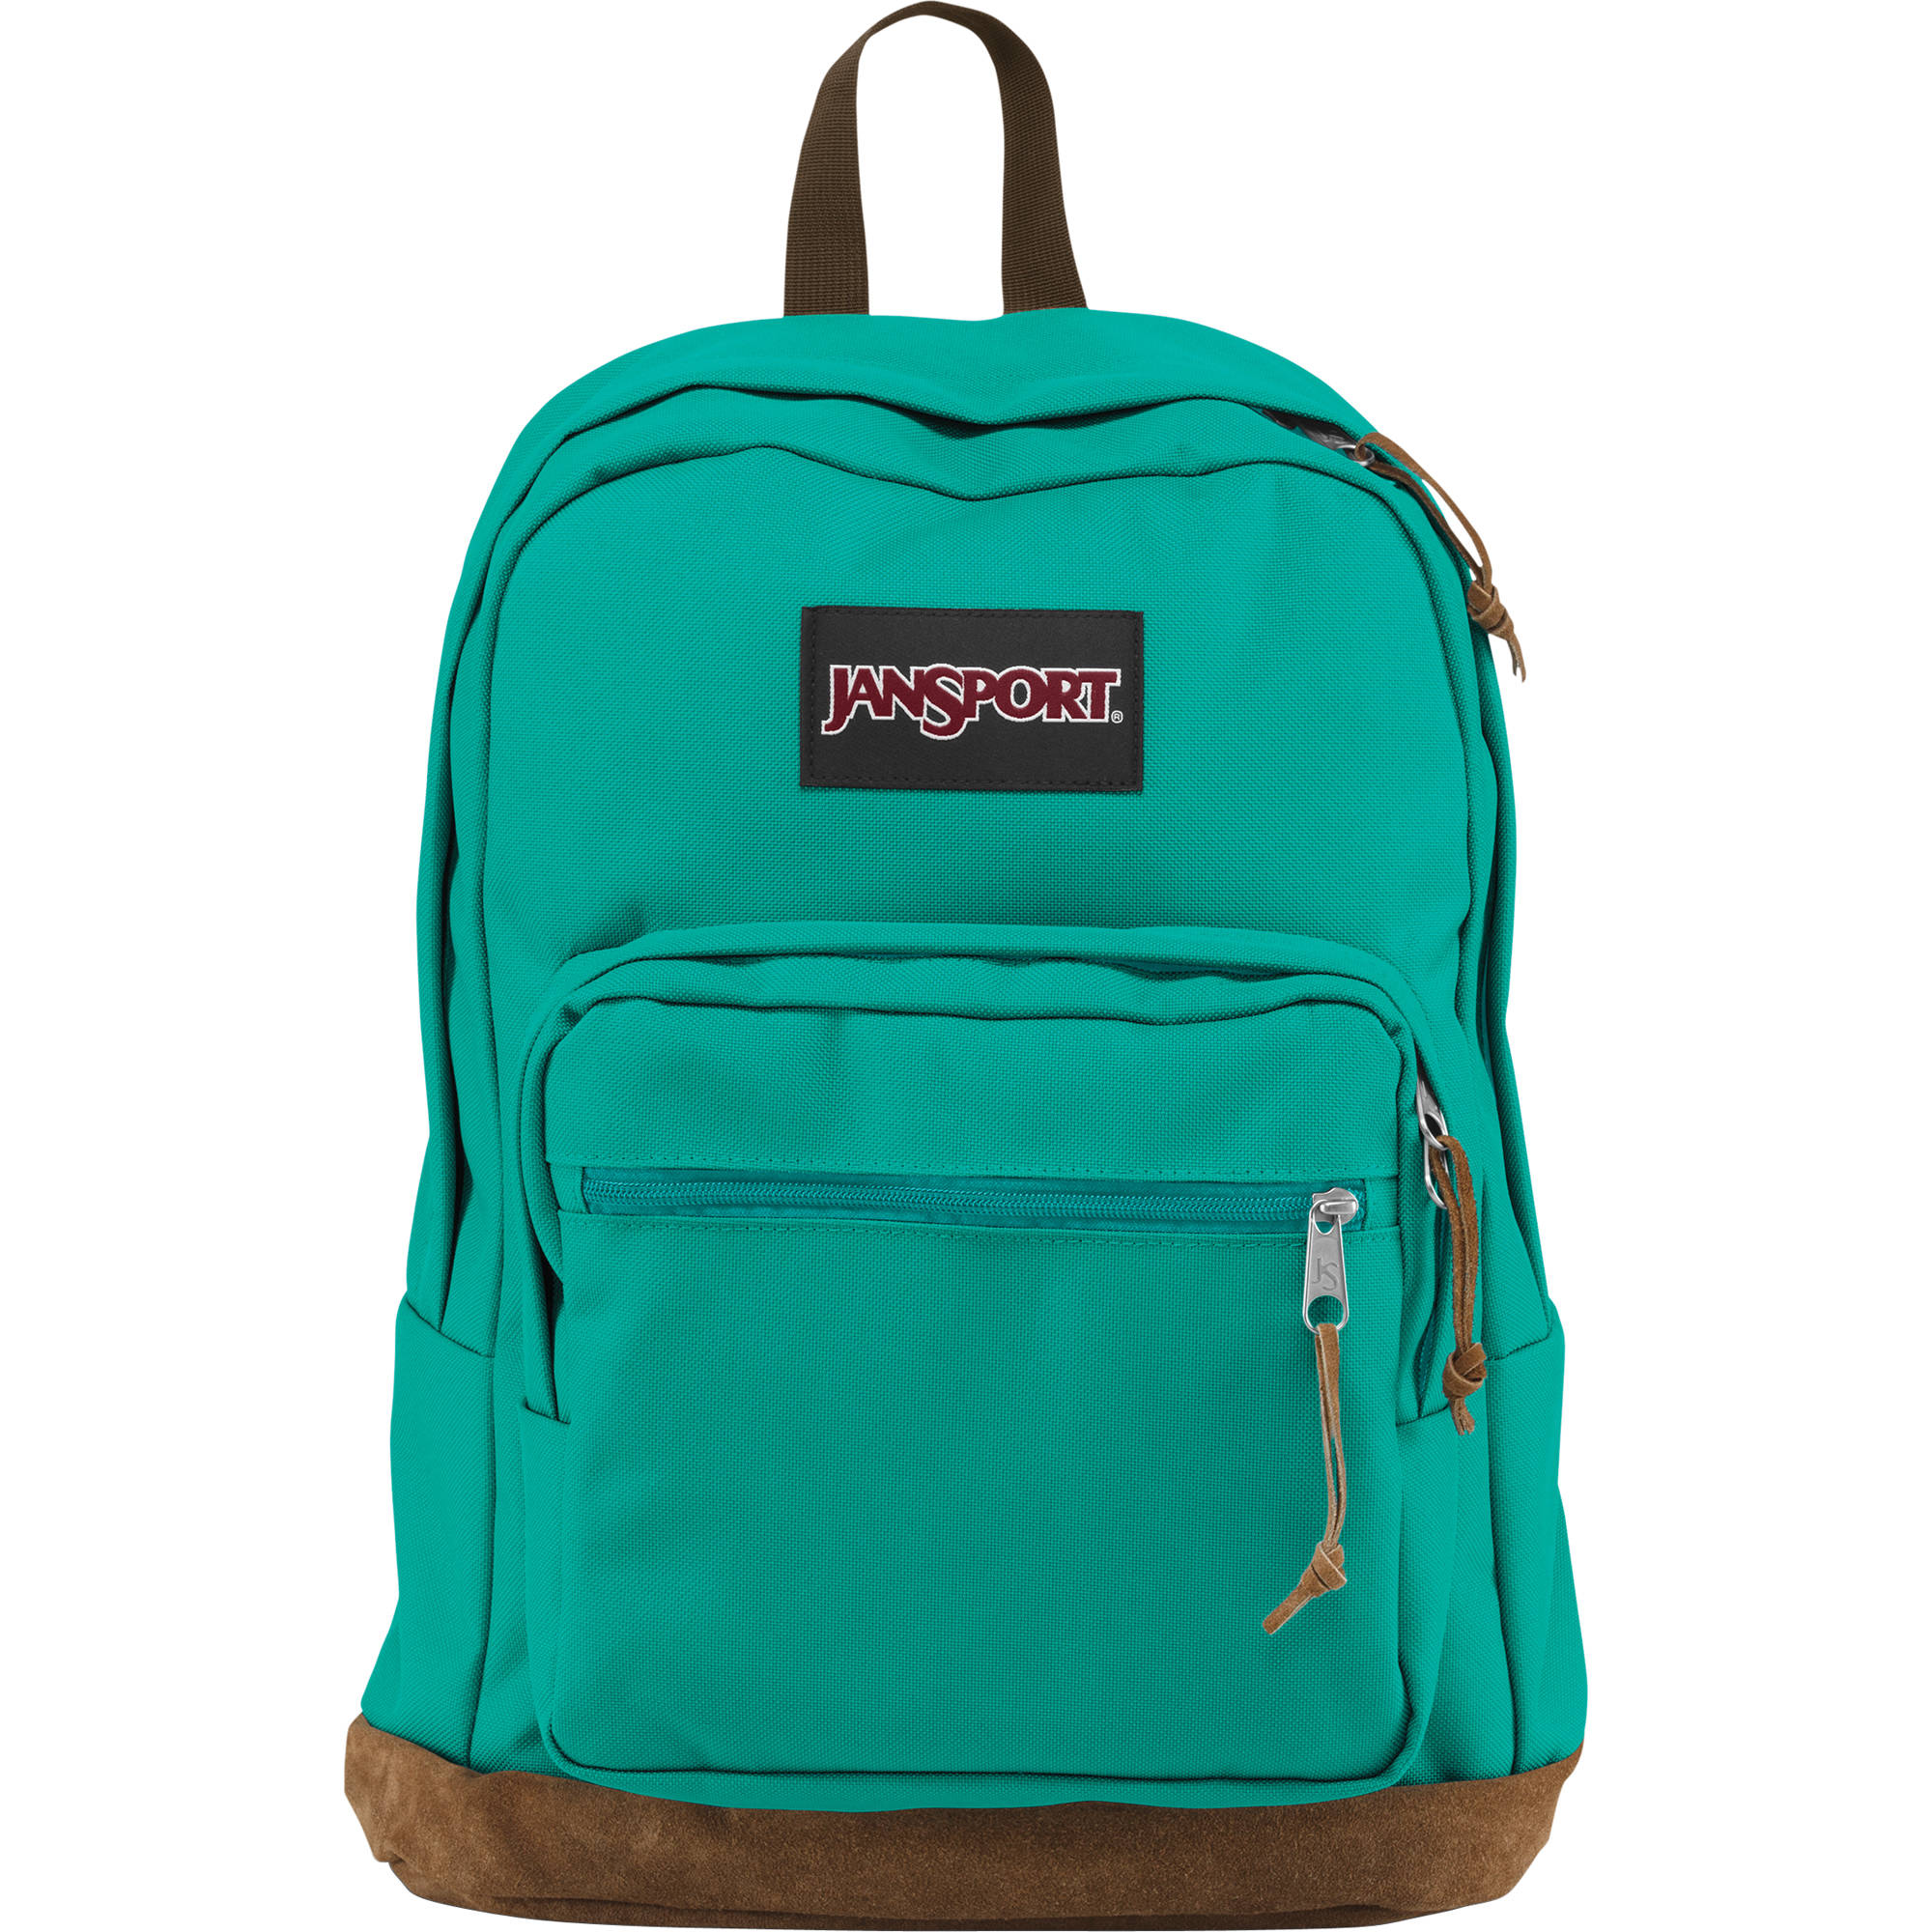 Where To Find Jansport Backpacks R0WXv3NR